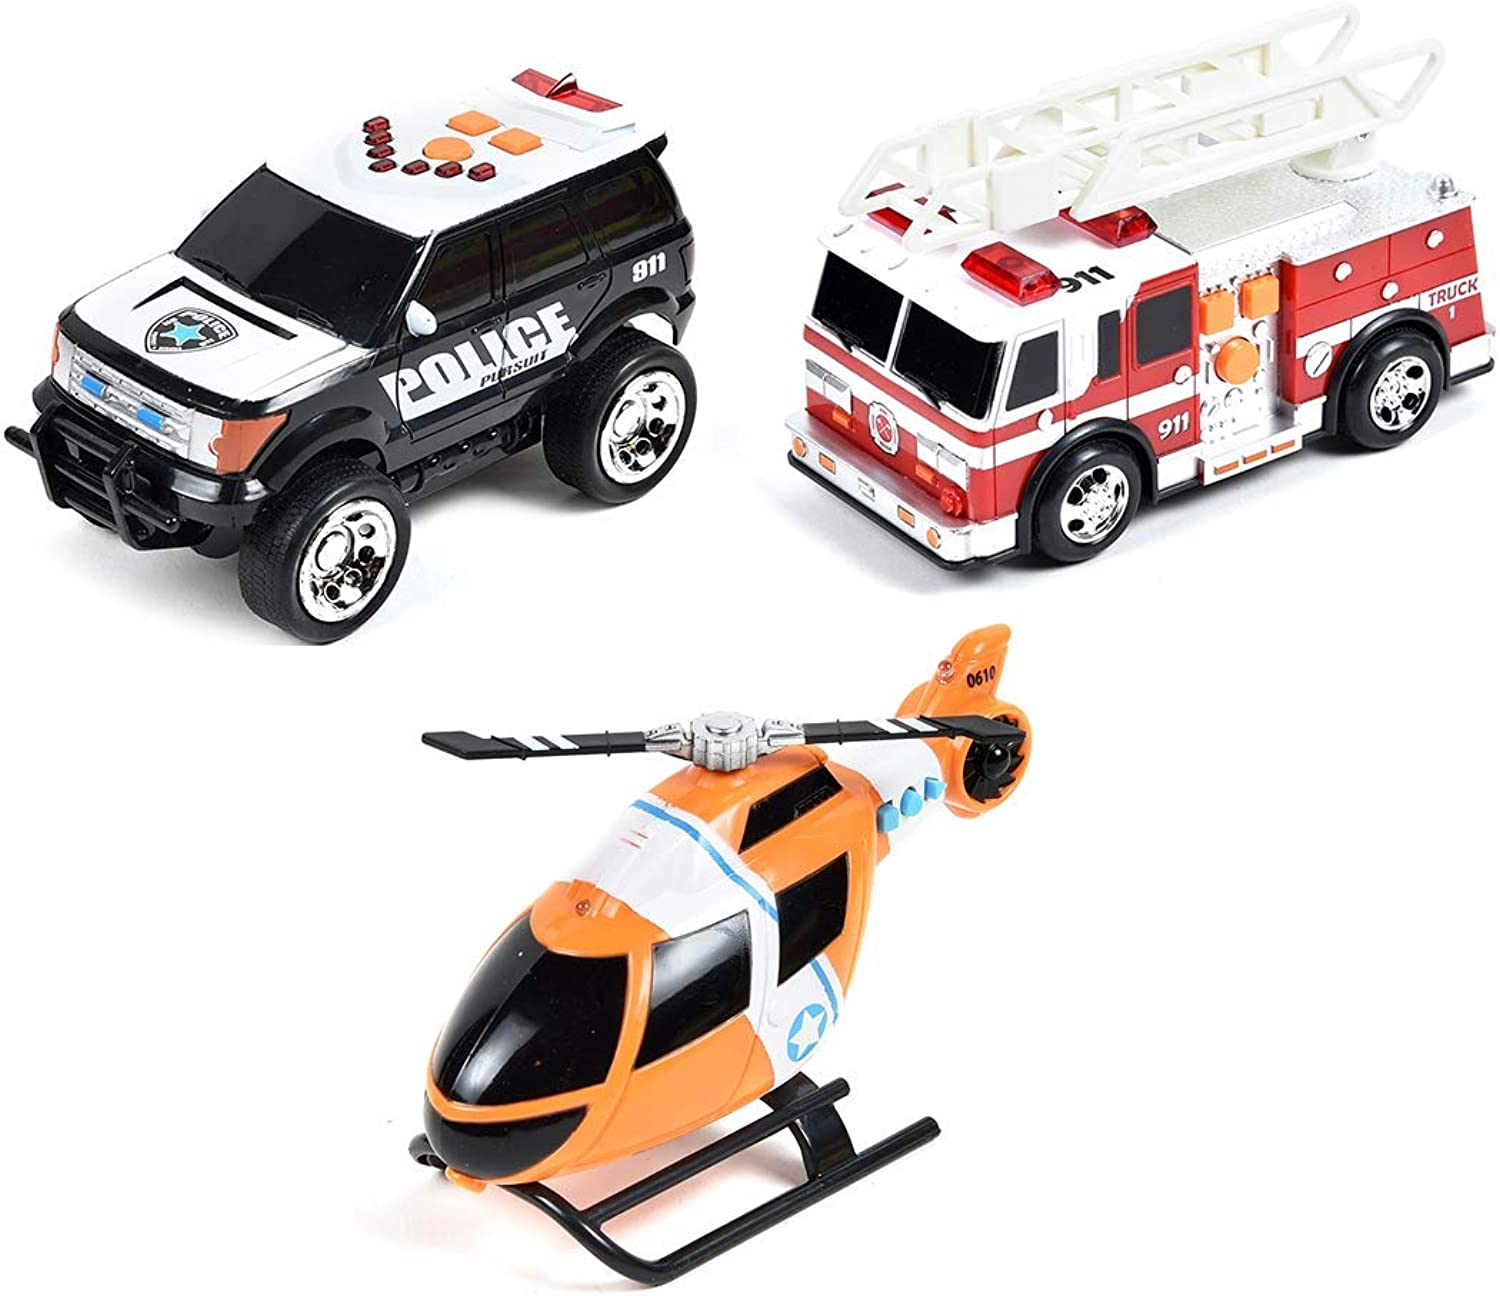 Maxx Action Light and Sound Rescue Vehicles 3-pack  Helicopter, Police SUV, Fire Truck (colors & Styles May Vary)